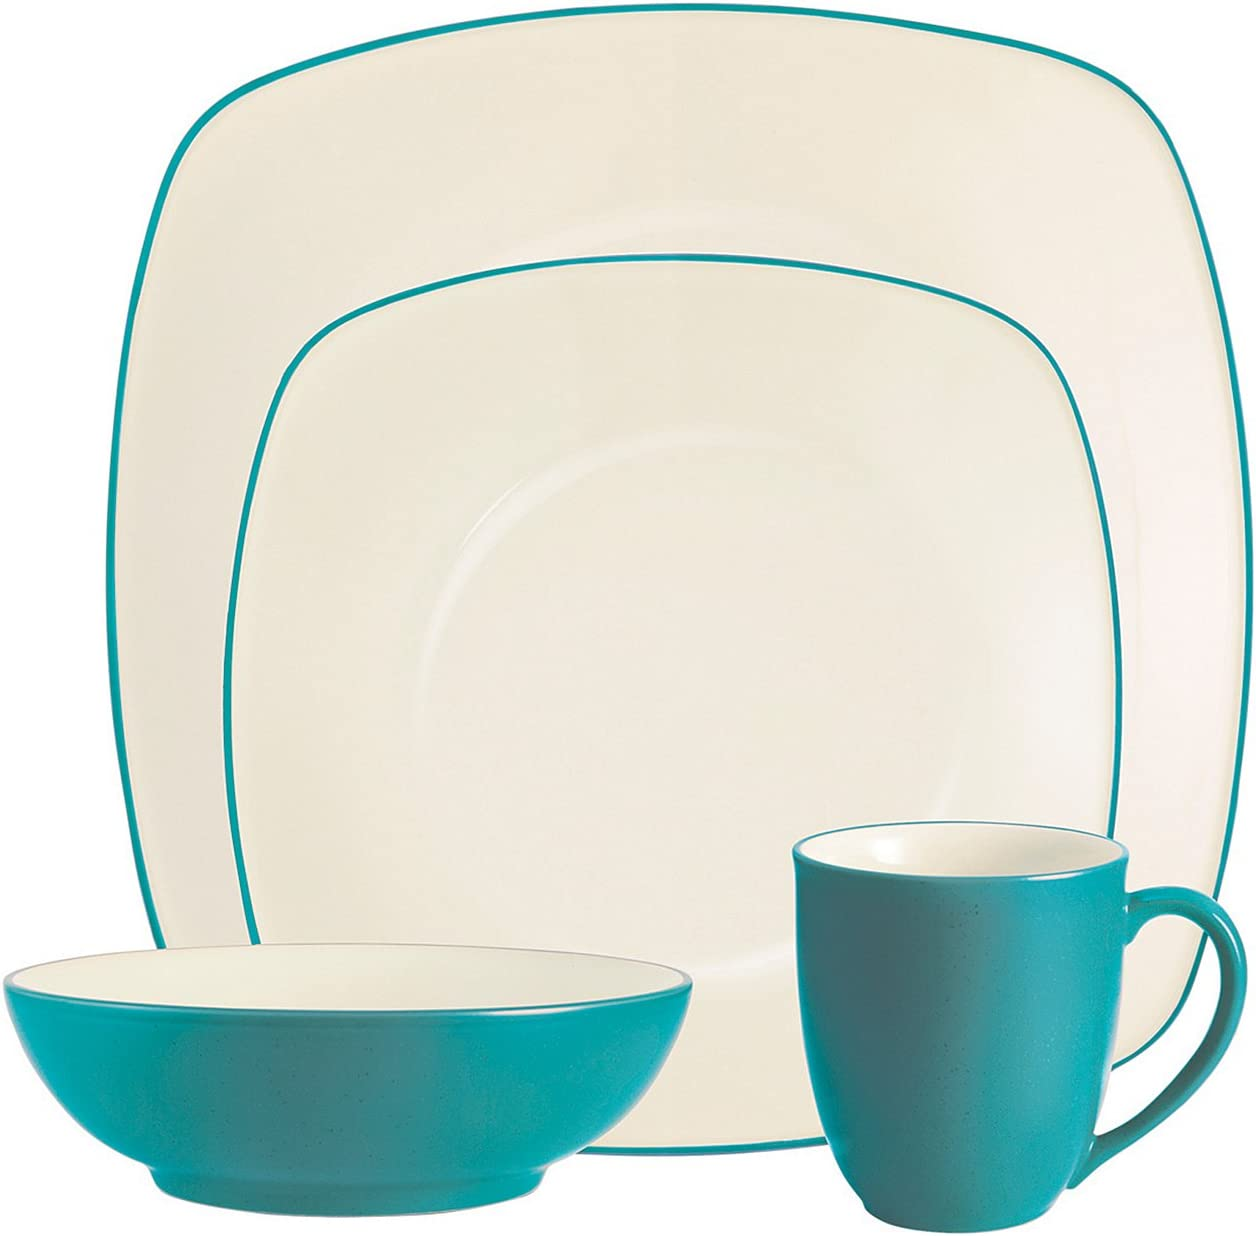 Noritake Colorwave Turquoise 4-Piece Place Setting, Square Shape